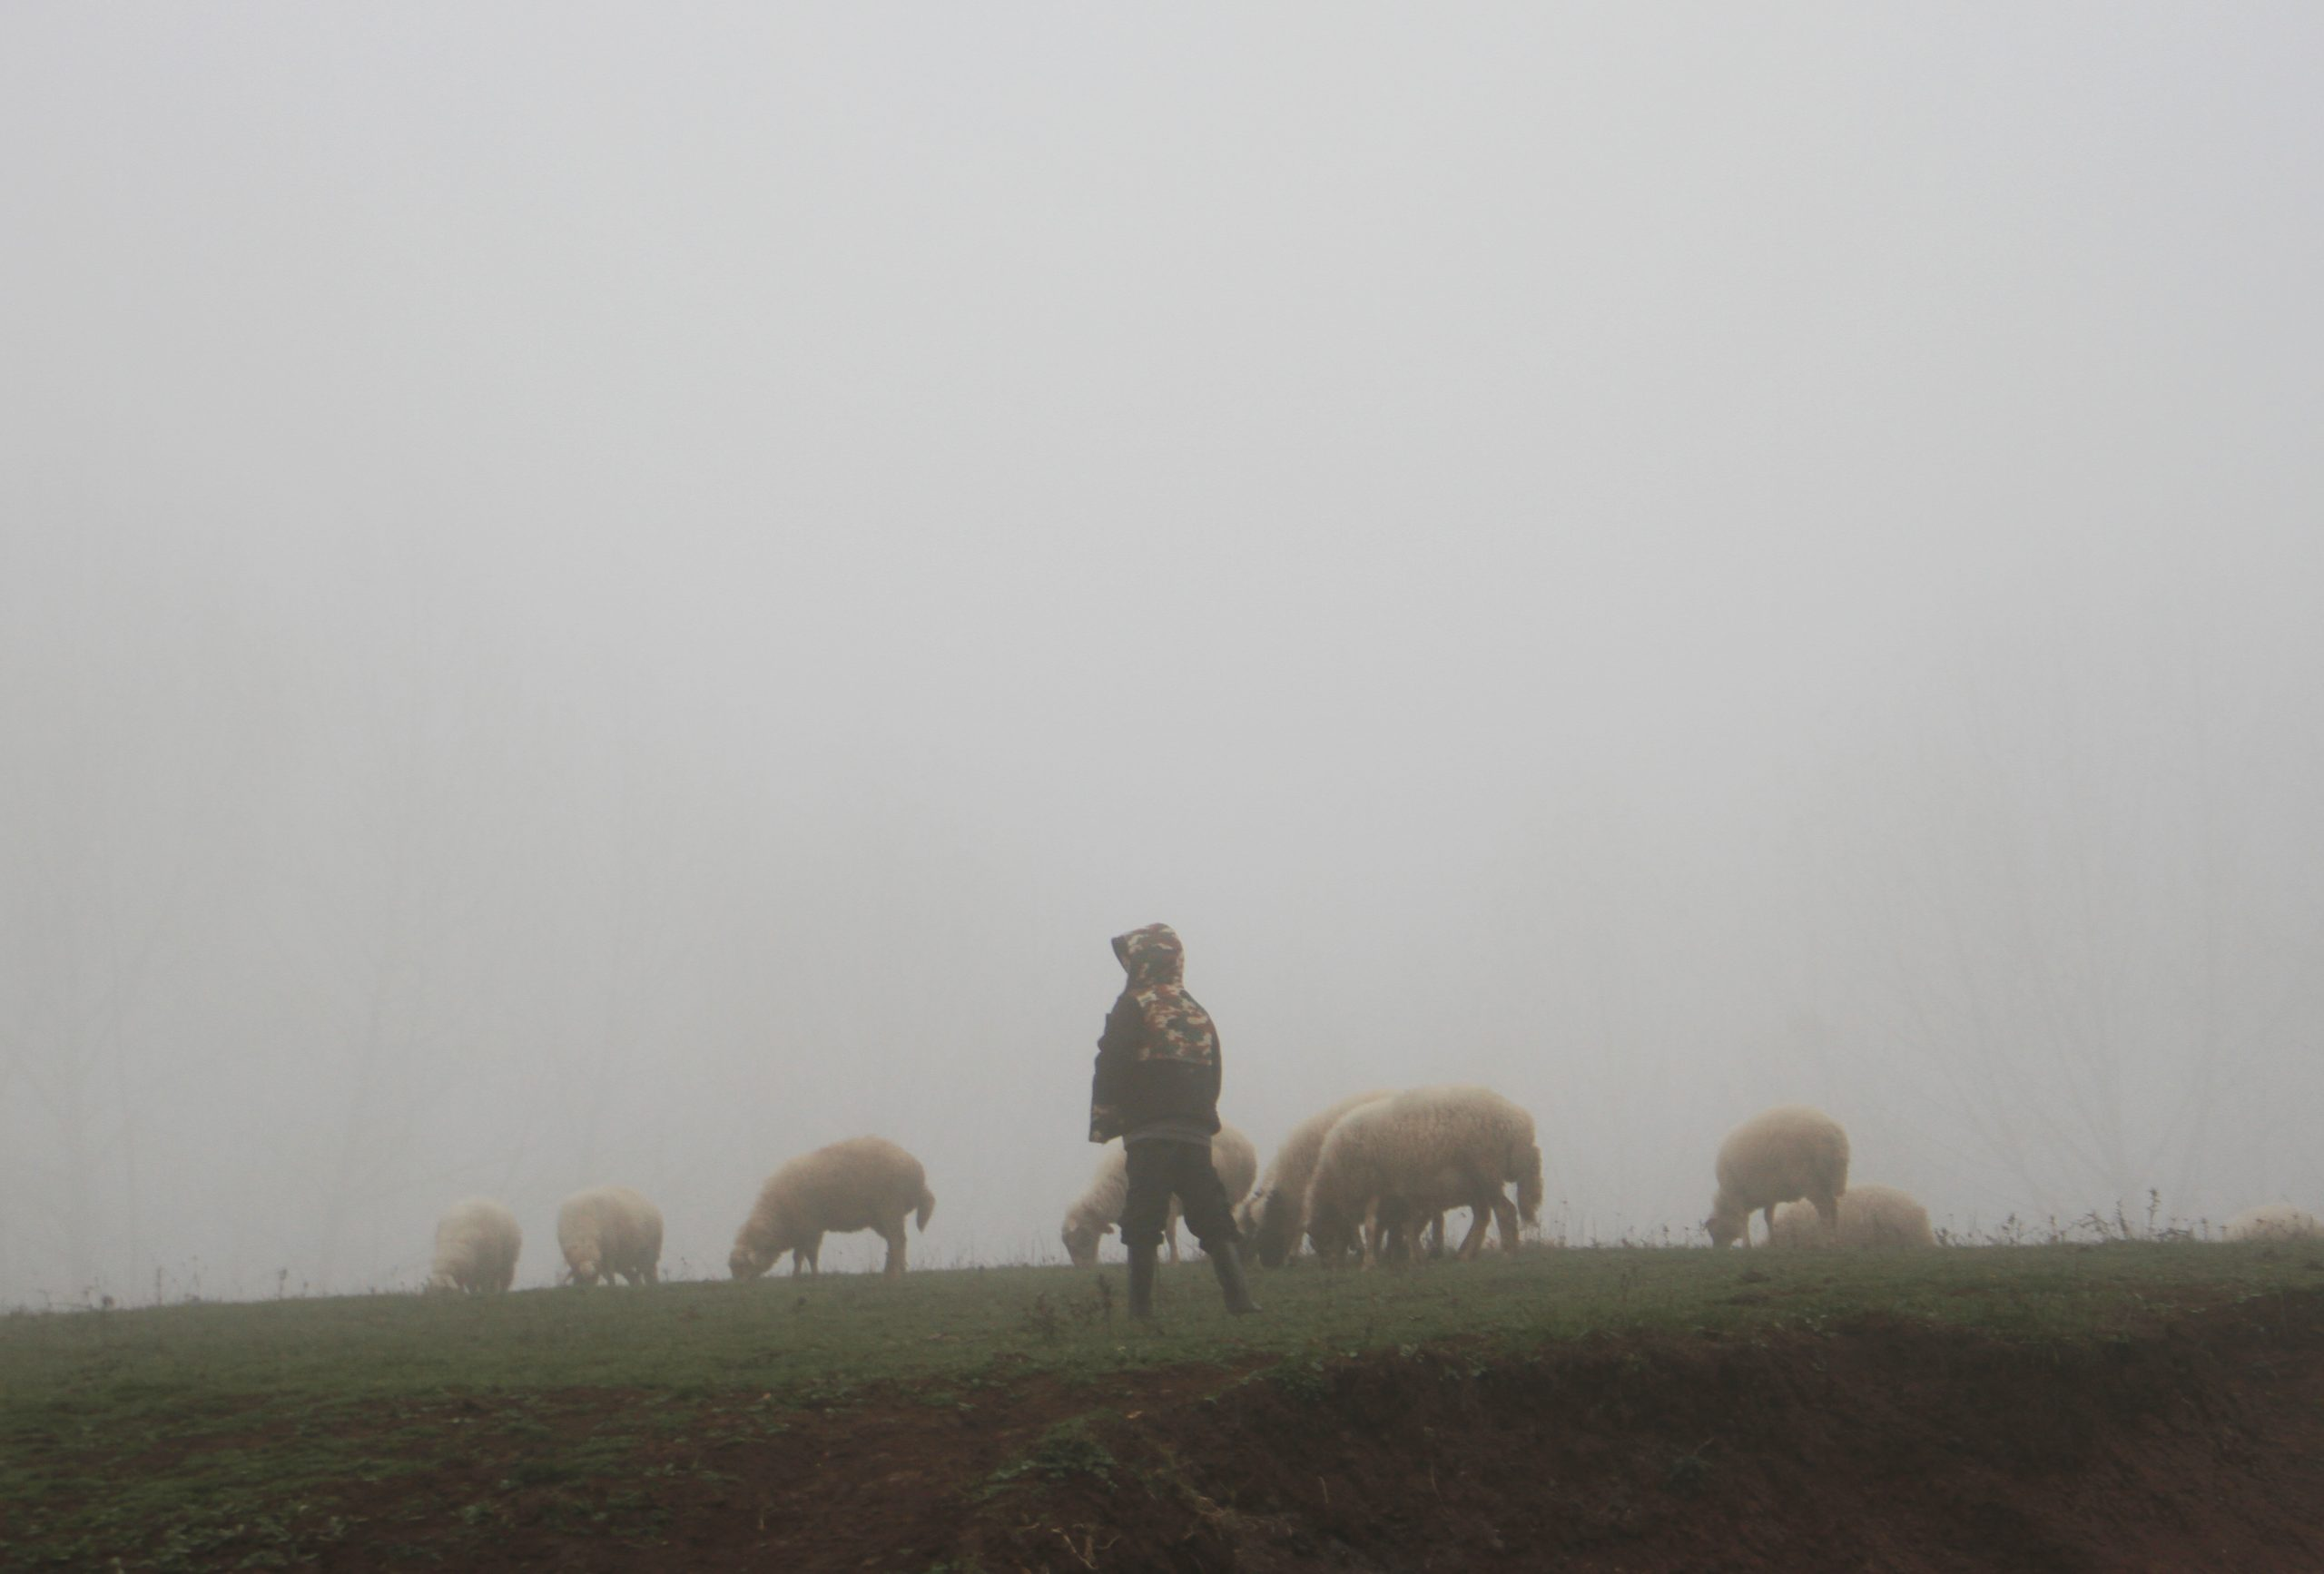 augustine on pastors seek out the lost sheep sermon 46